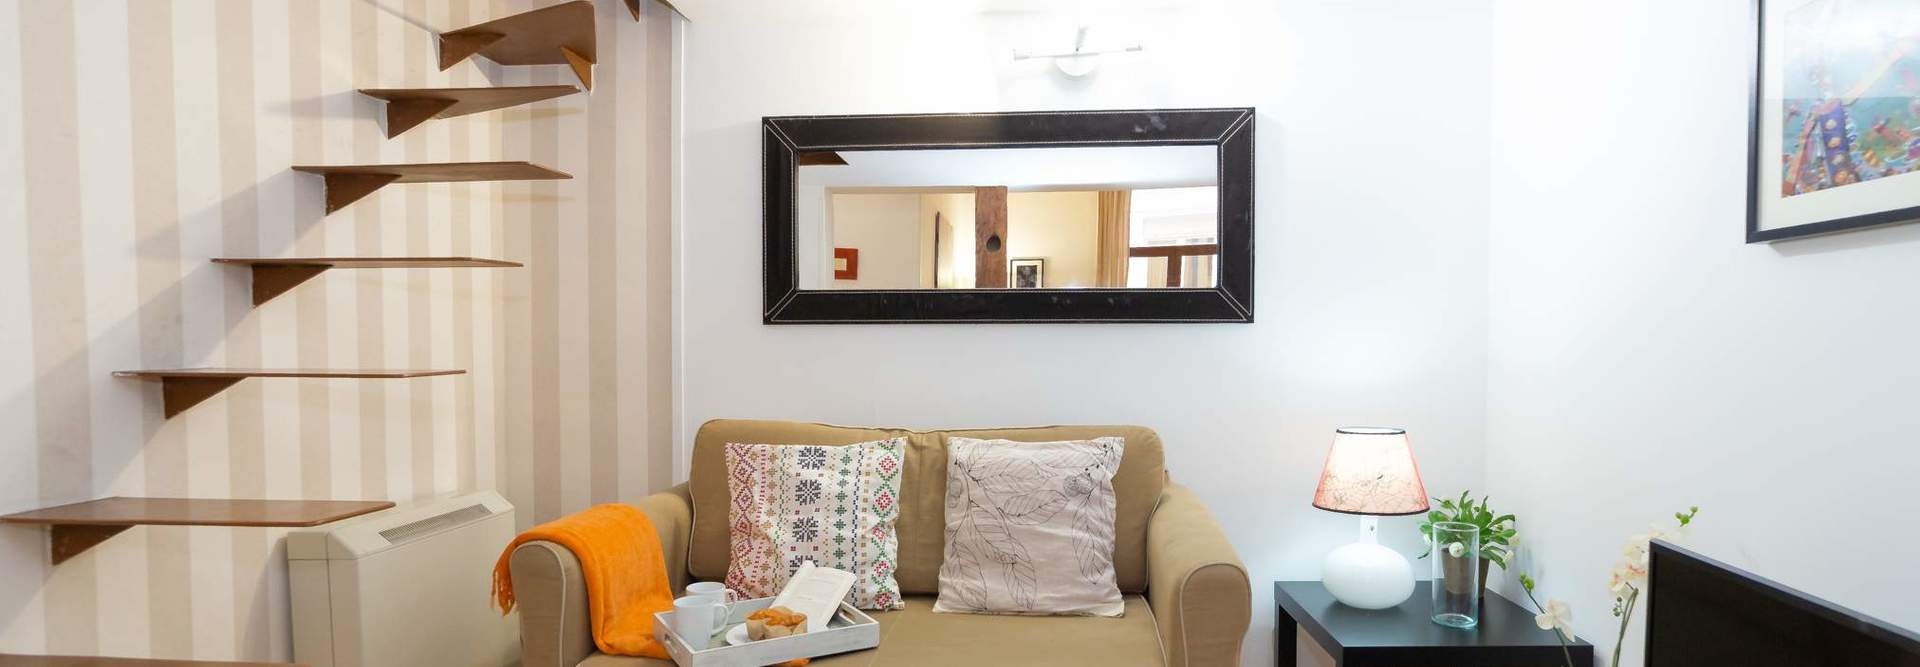 Home alquiler apartamentos madrid mad4rent 28